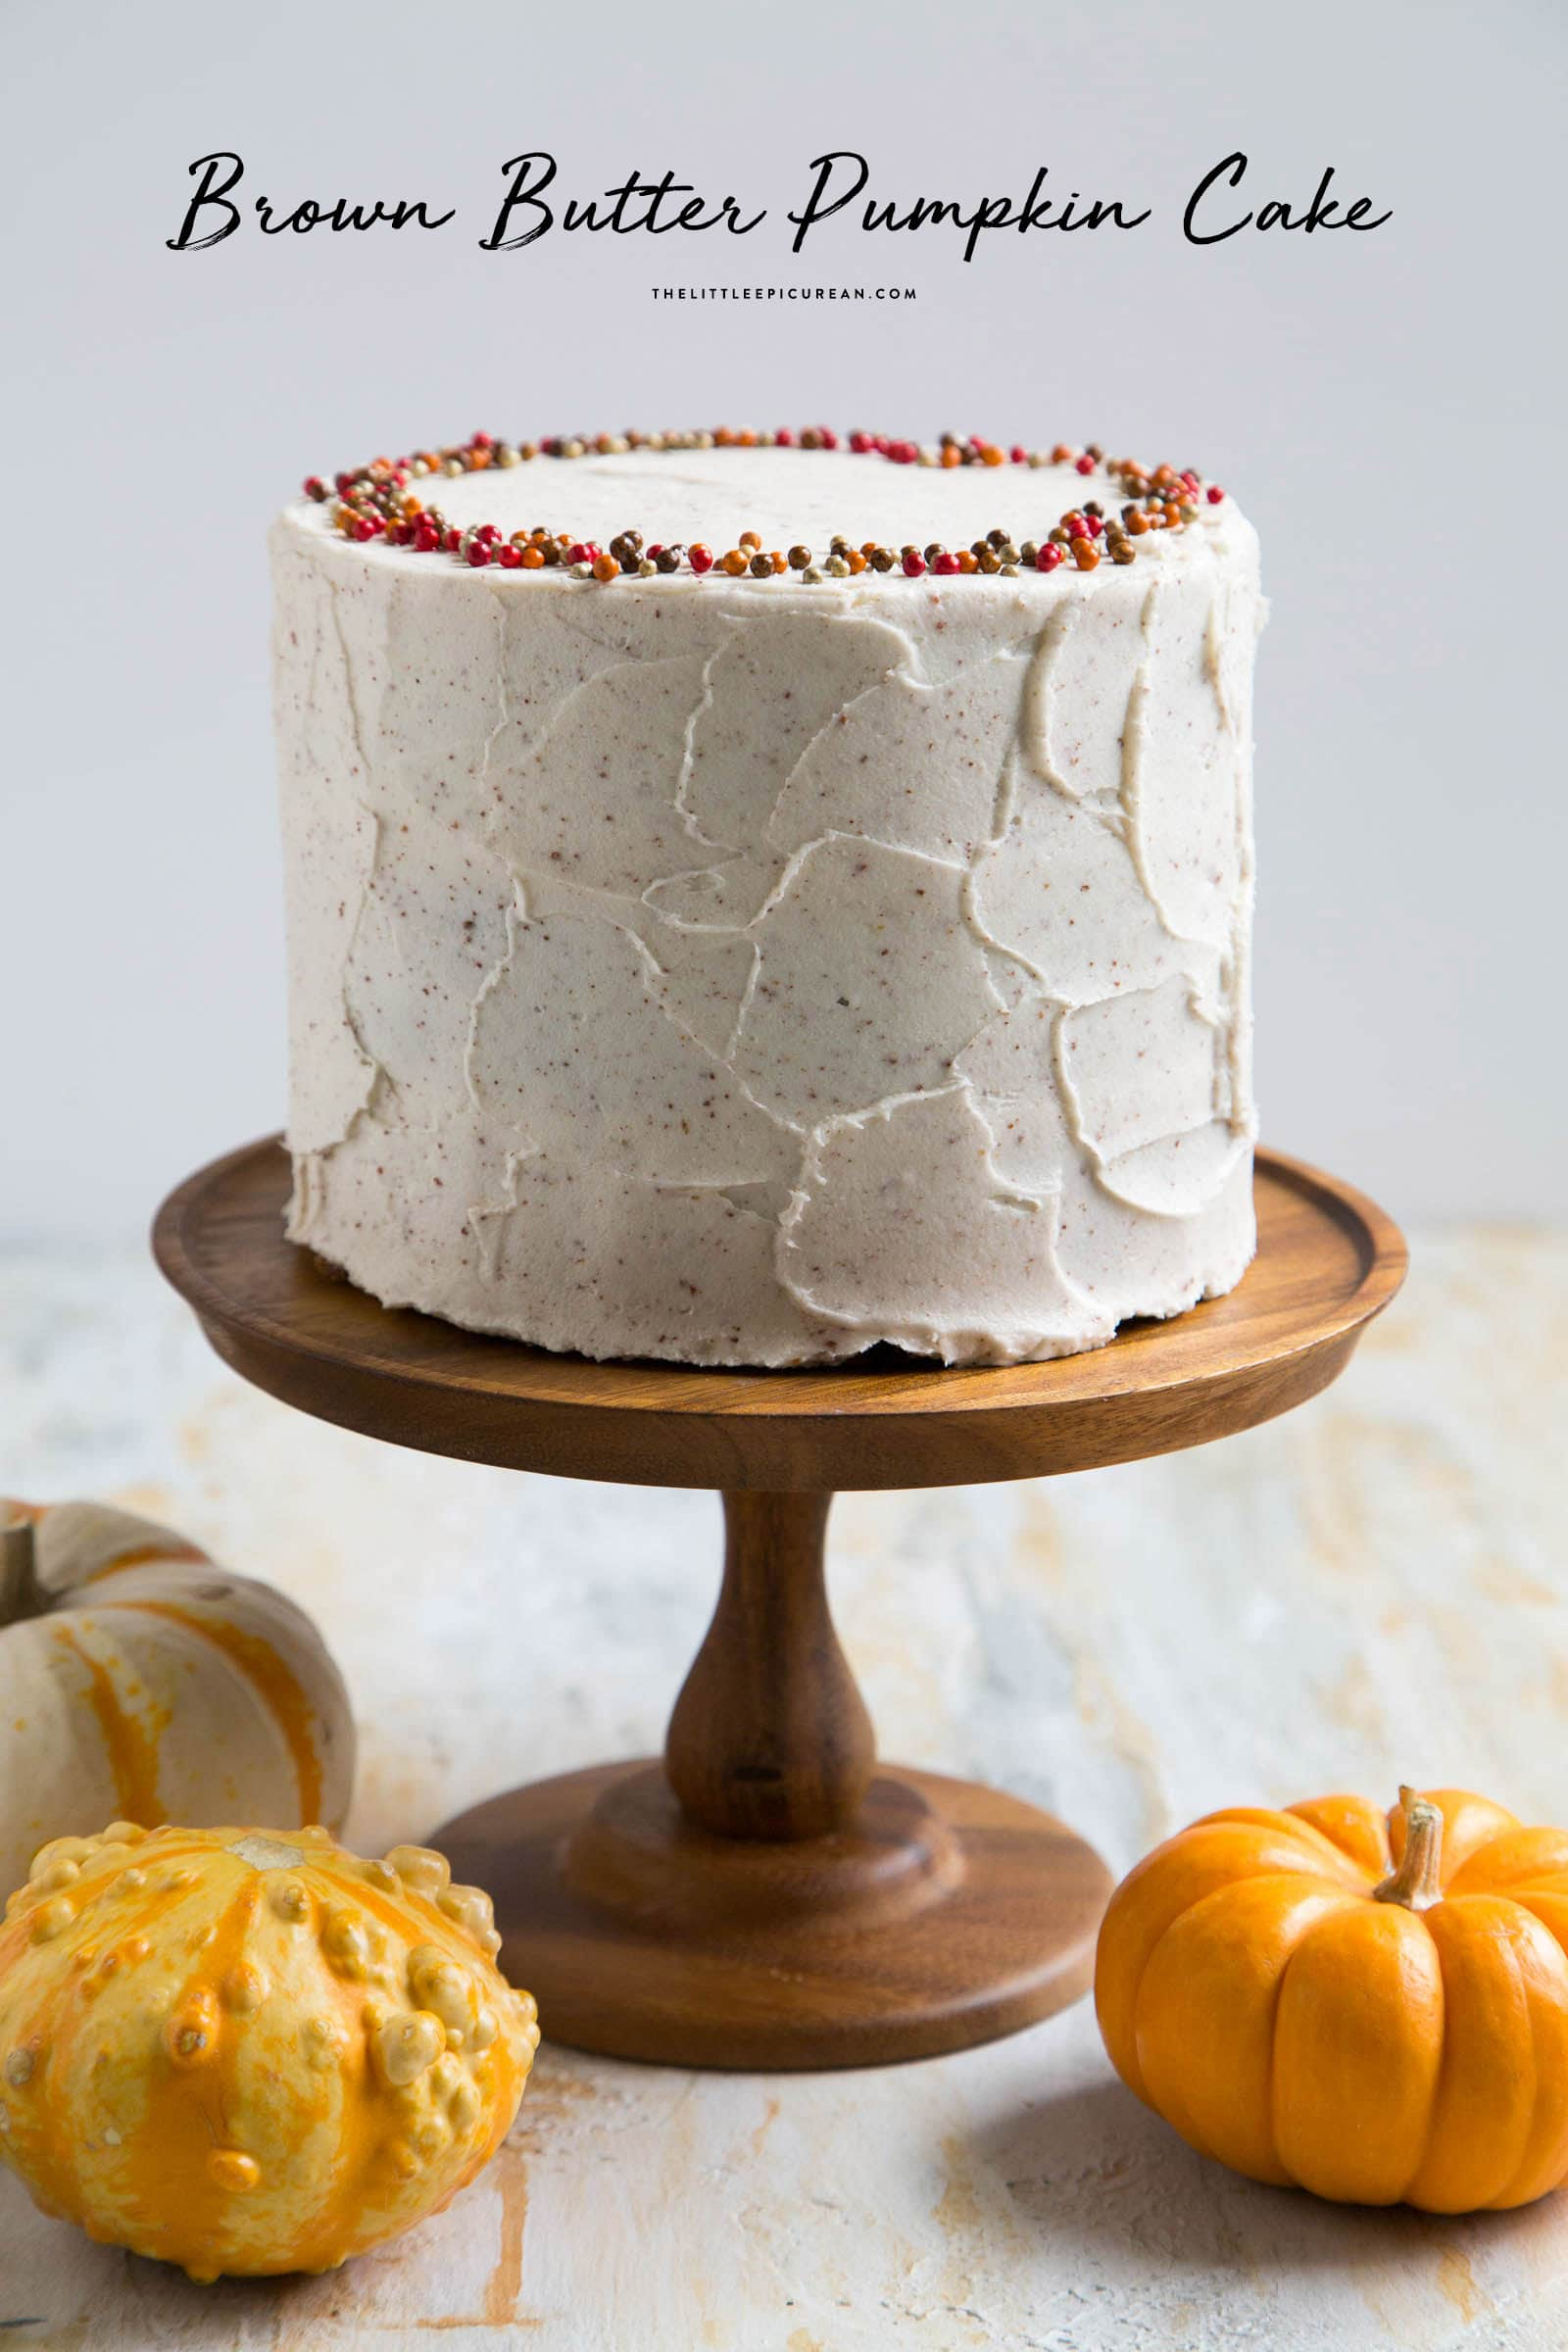 Brown Butter Pumpkin Cake- The Little Epicurean